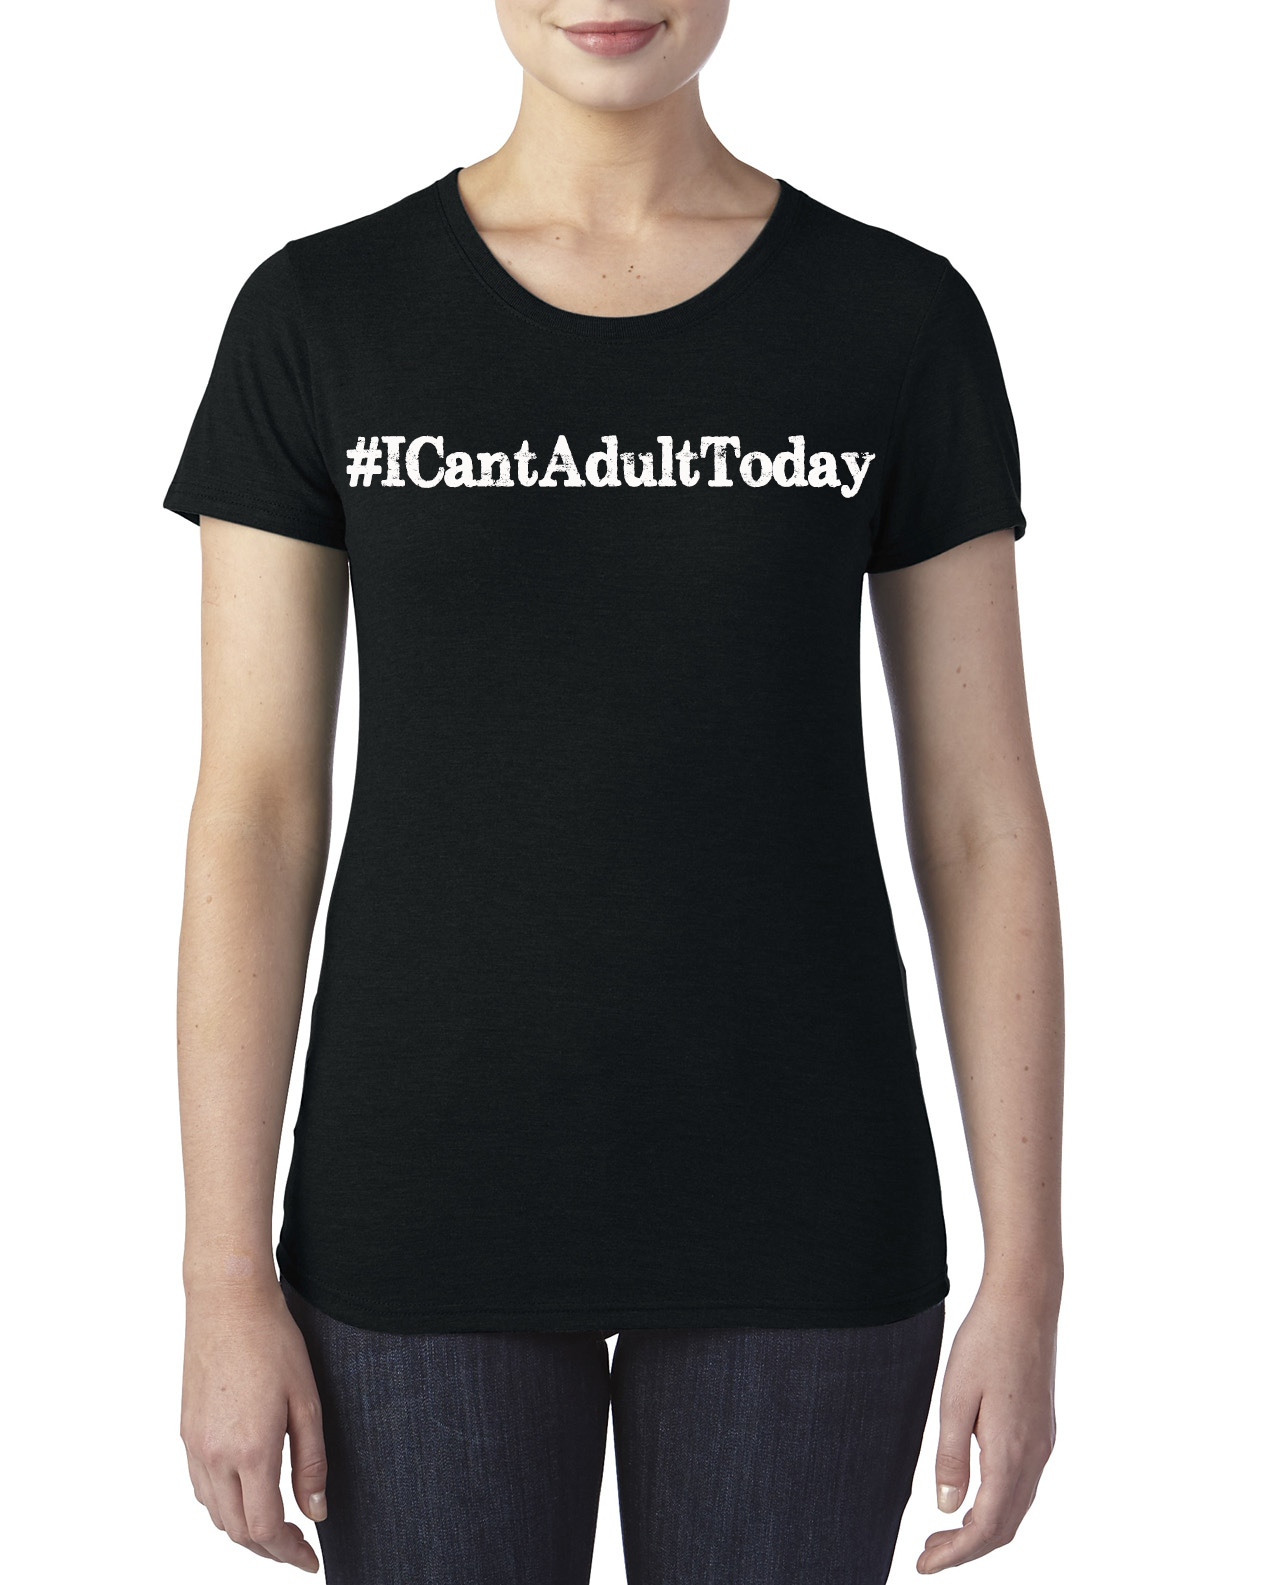 #ICantAdultToday Woman's T-Shirt